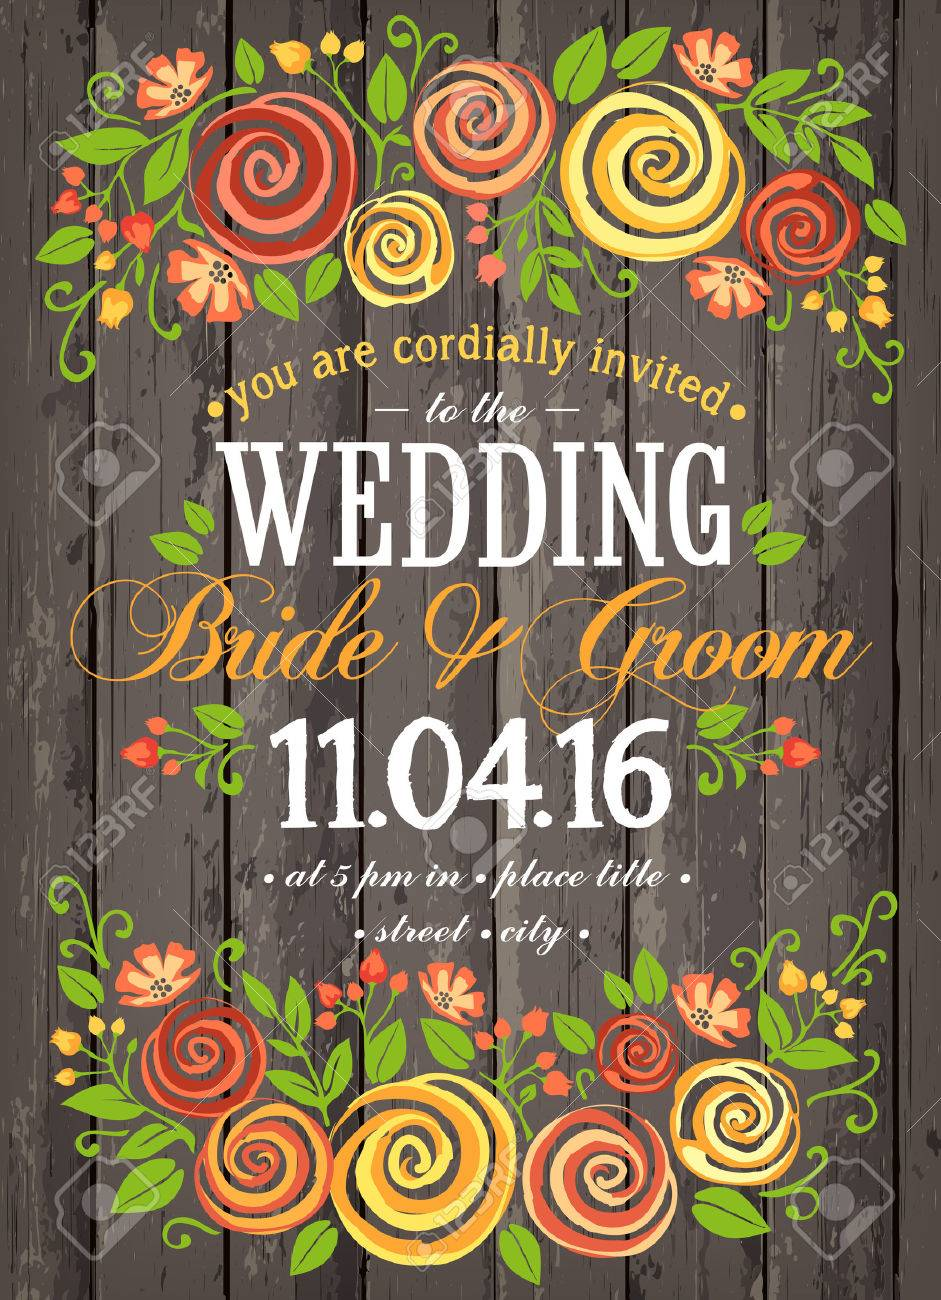 Wedding invitation card with beuty floral background. Inspiration card for wedding, date, birthday, tea or garden party - 54192156